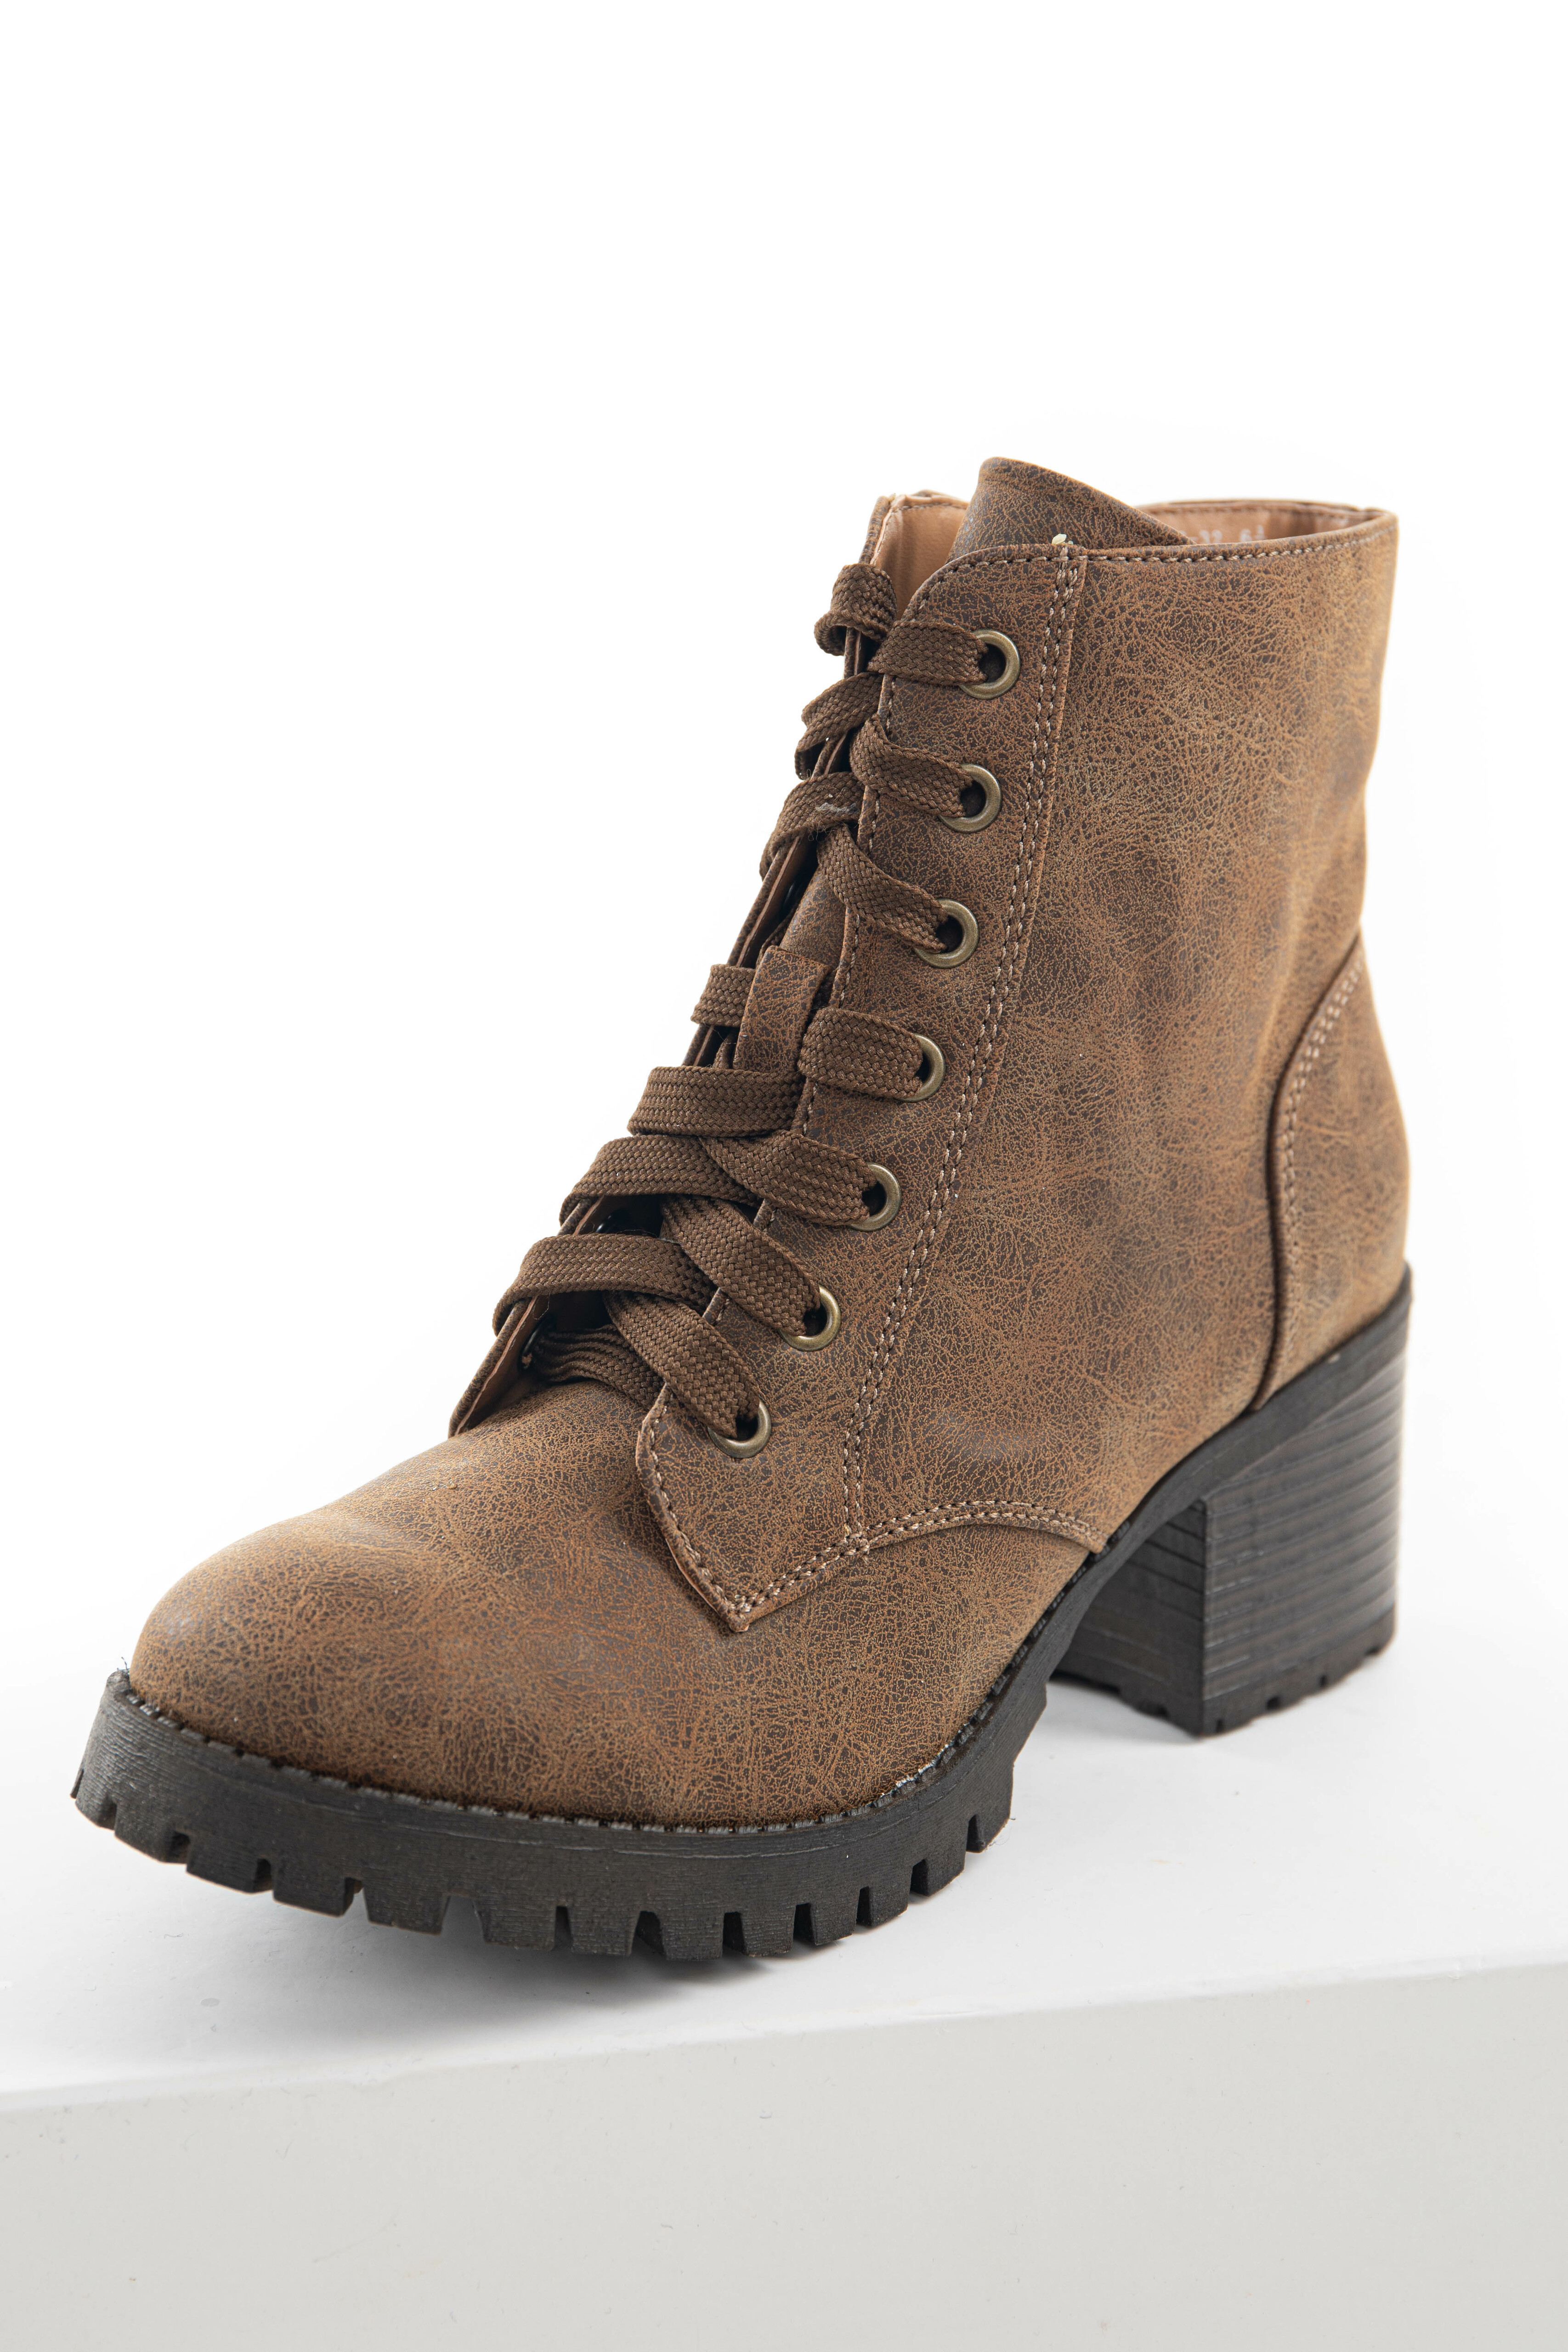 Warm Walnut Faux Leather Lace Up Combat Boots